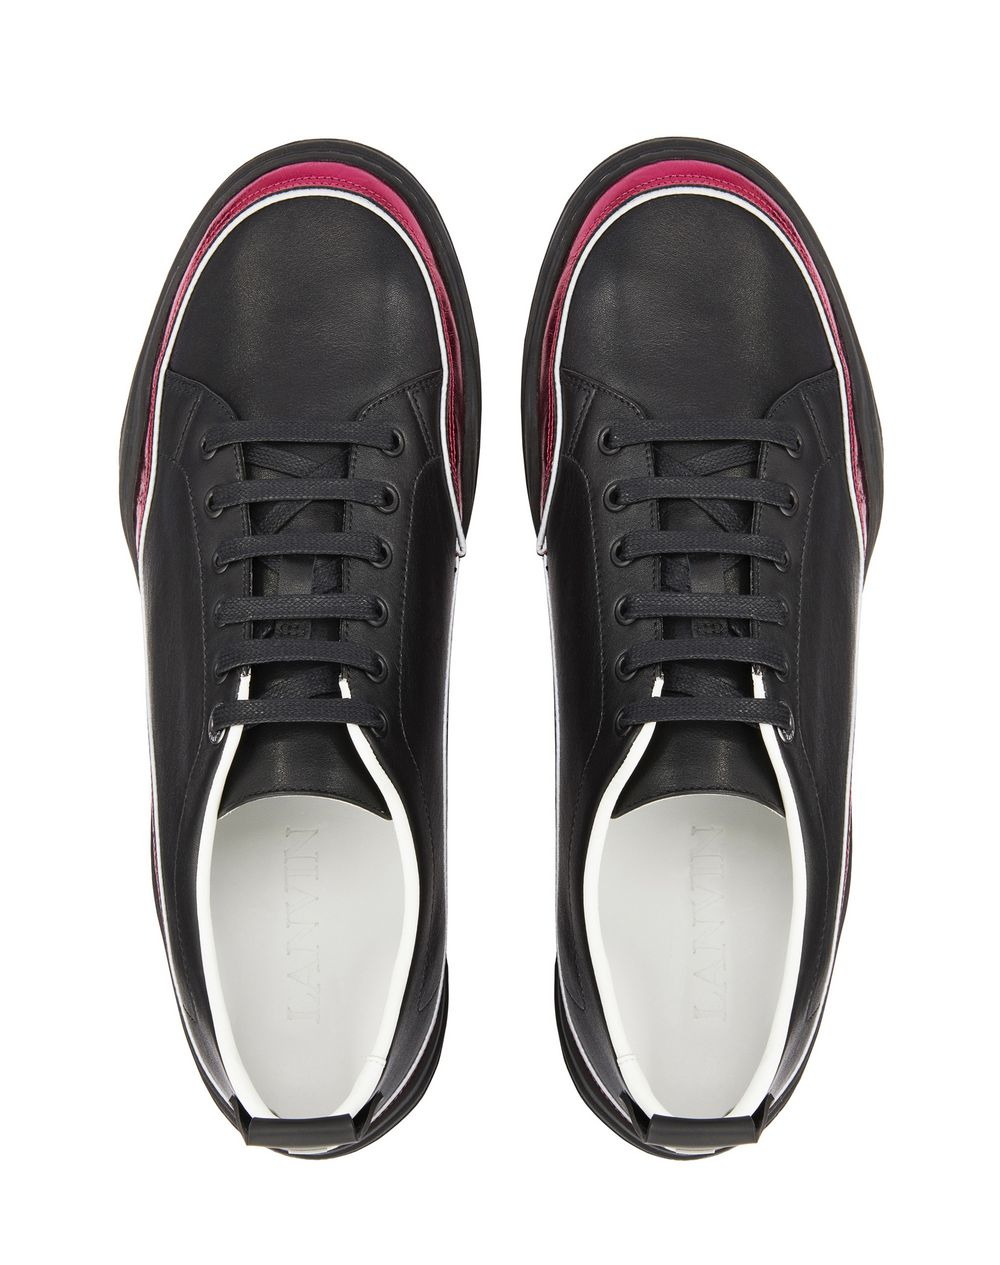 NAPPA LEATHER DIVING SNEAKER - Lanvin